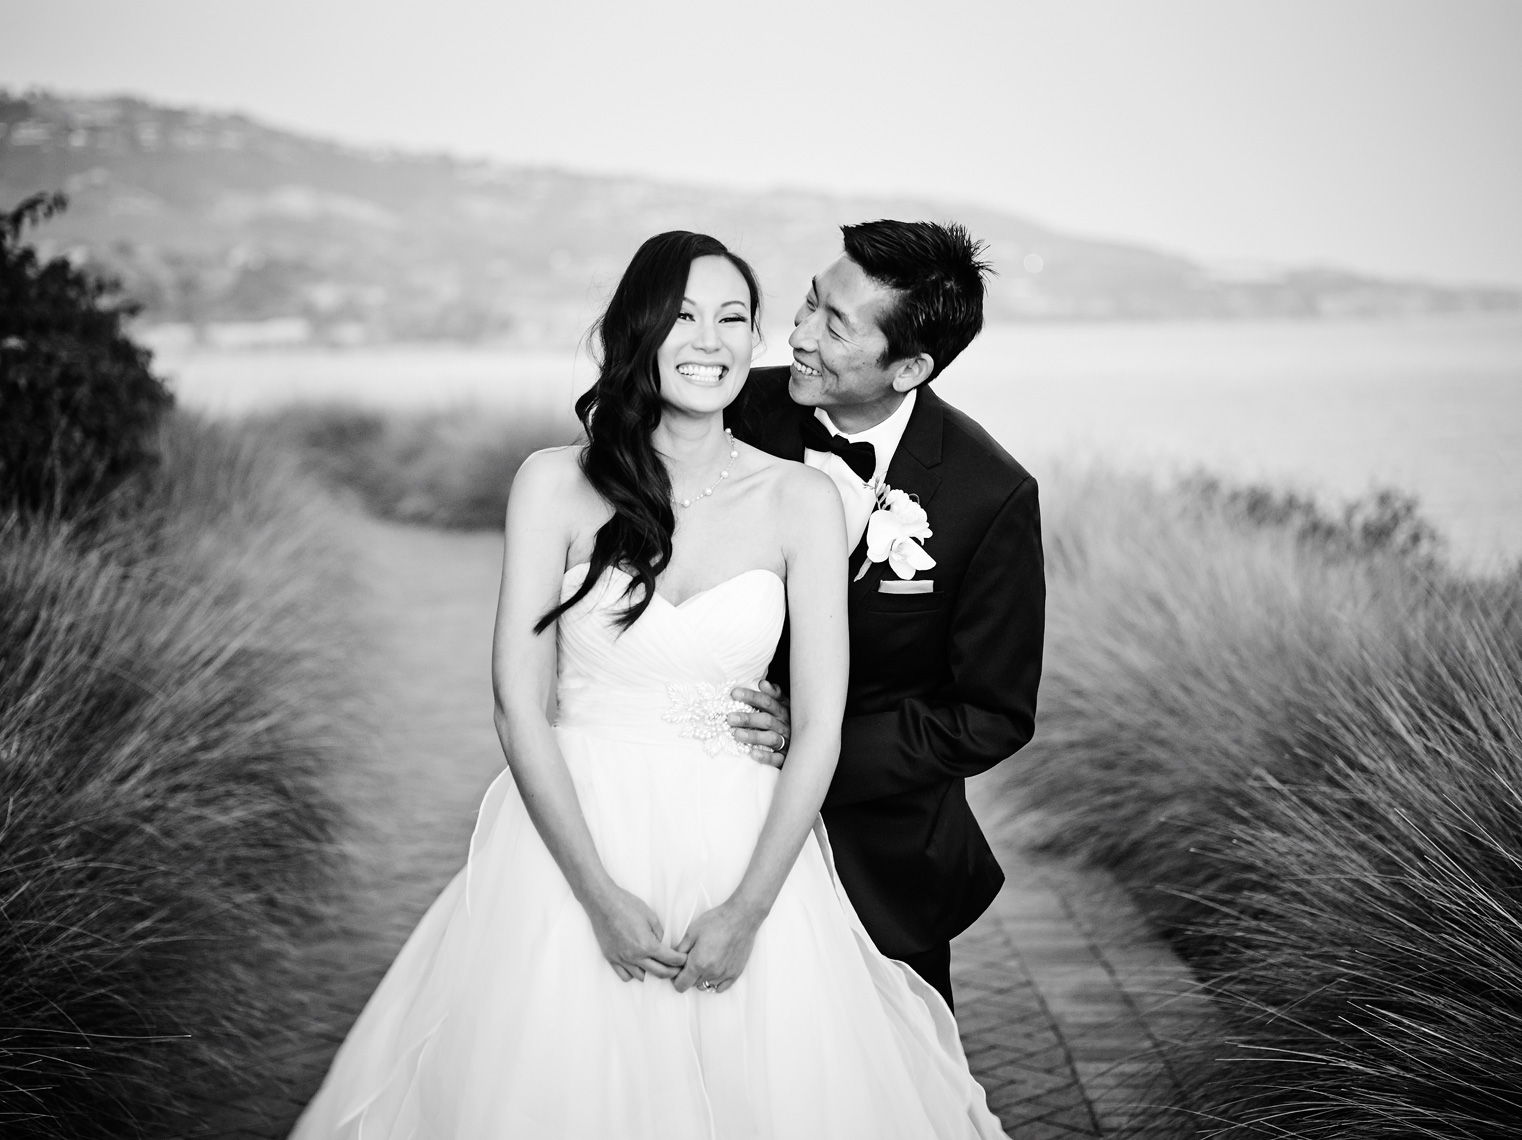 Bride and groom laugh together after wedding ceremony at Terranea Resort in Los Angeles, California.